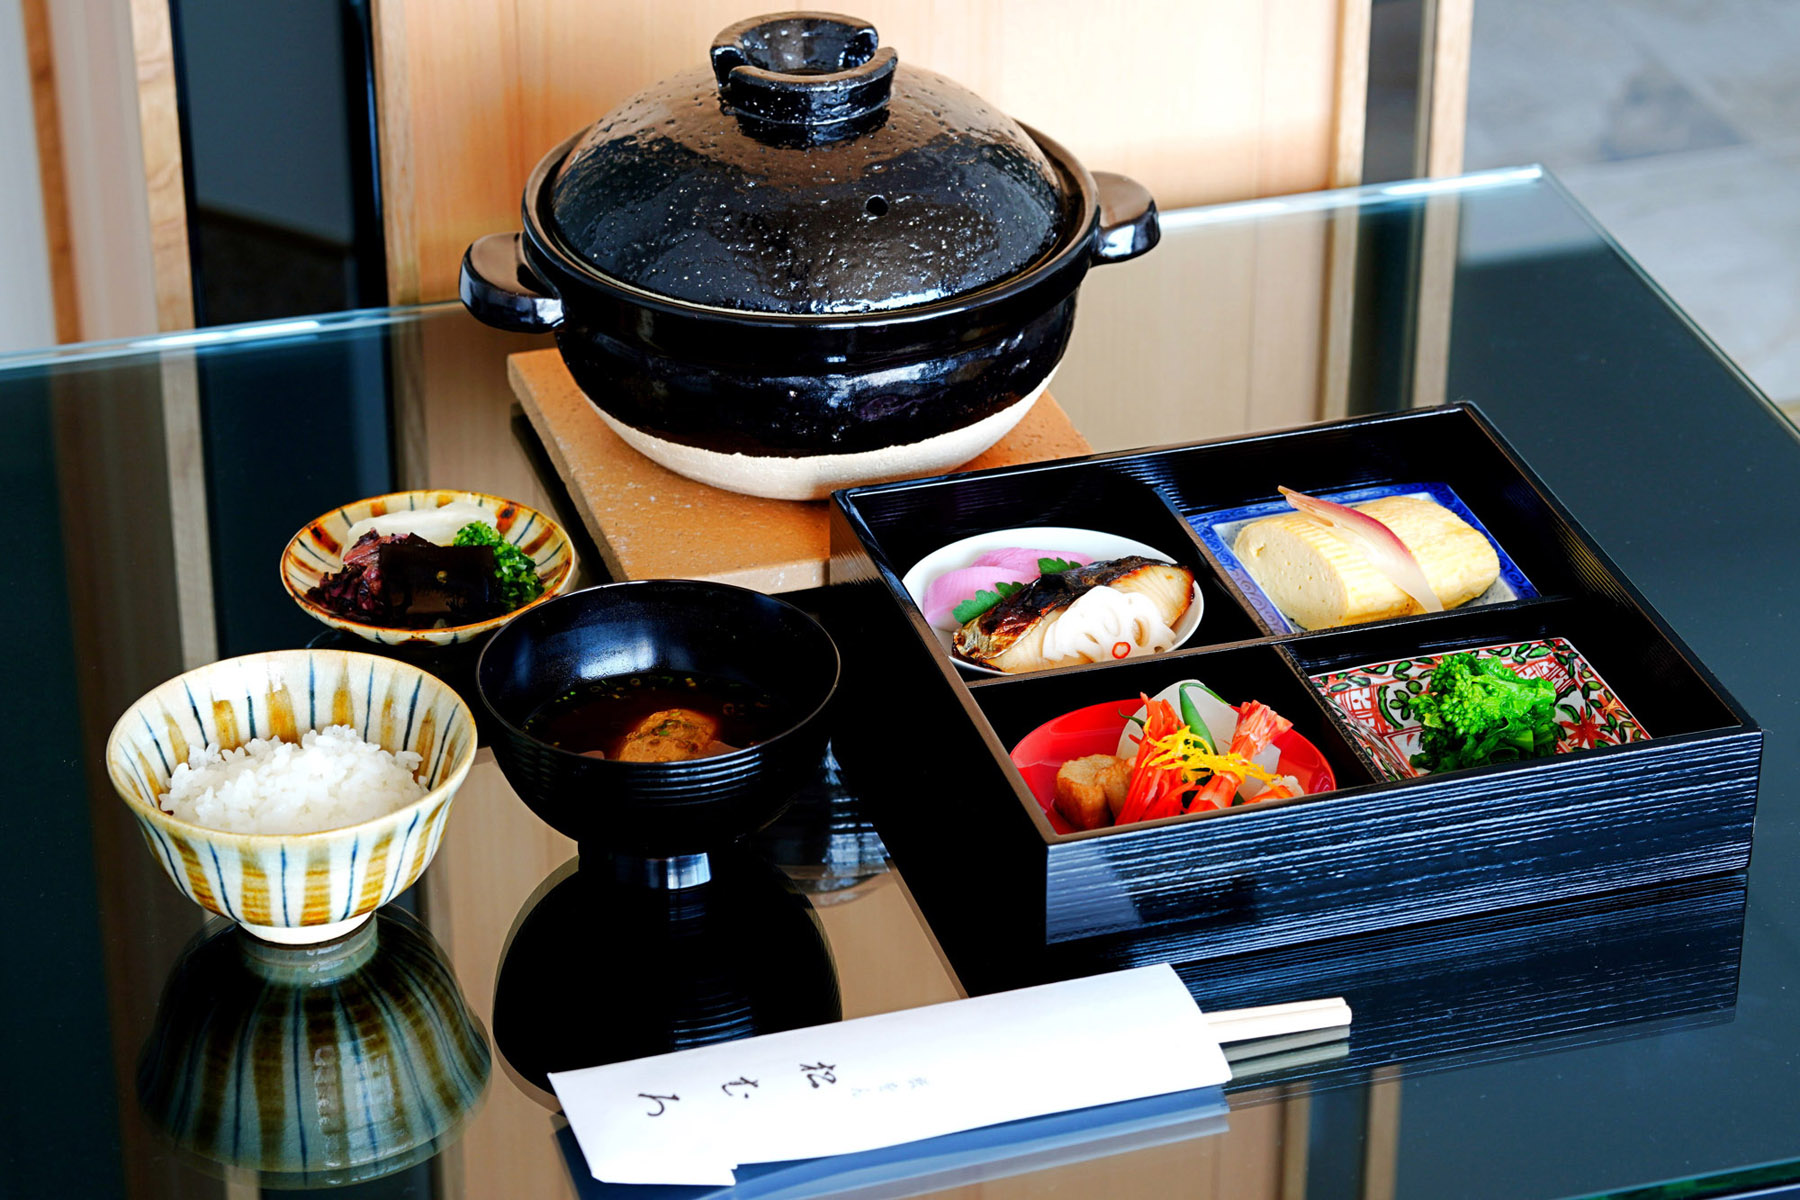 IMG: Special Plan with a Japanese Breakfast